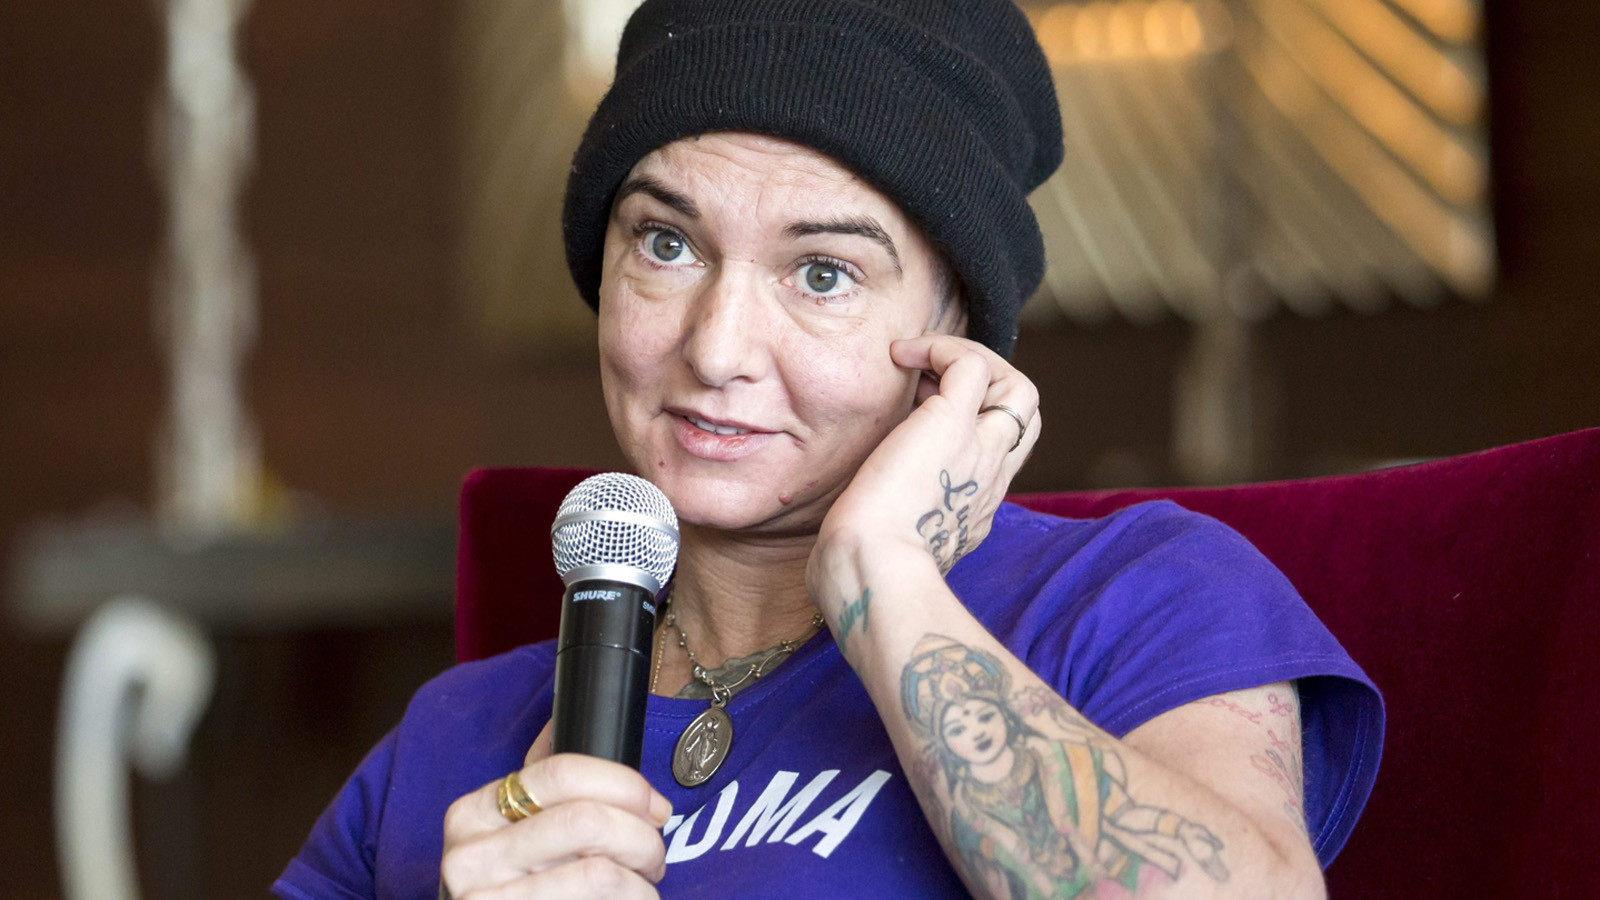 Sinead O'Connor Shares Her Emotional Struggles Online